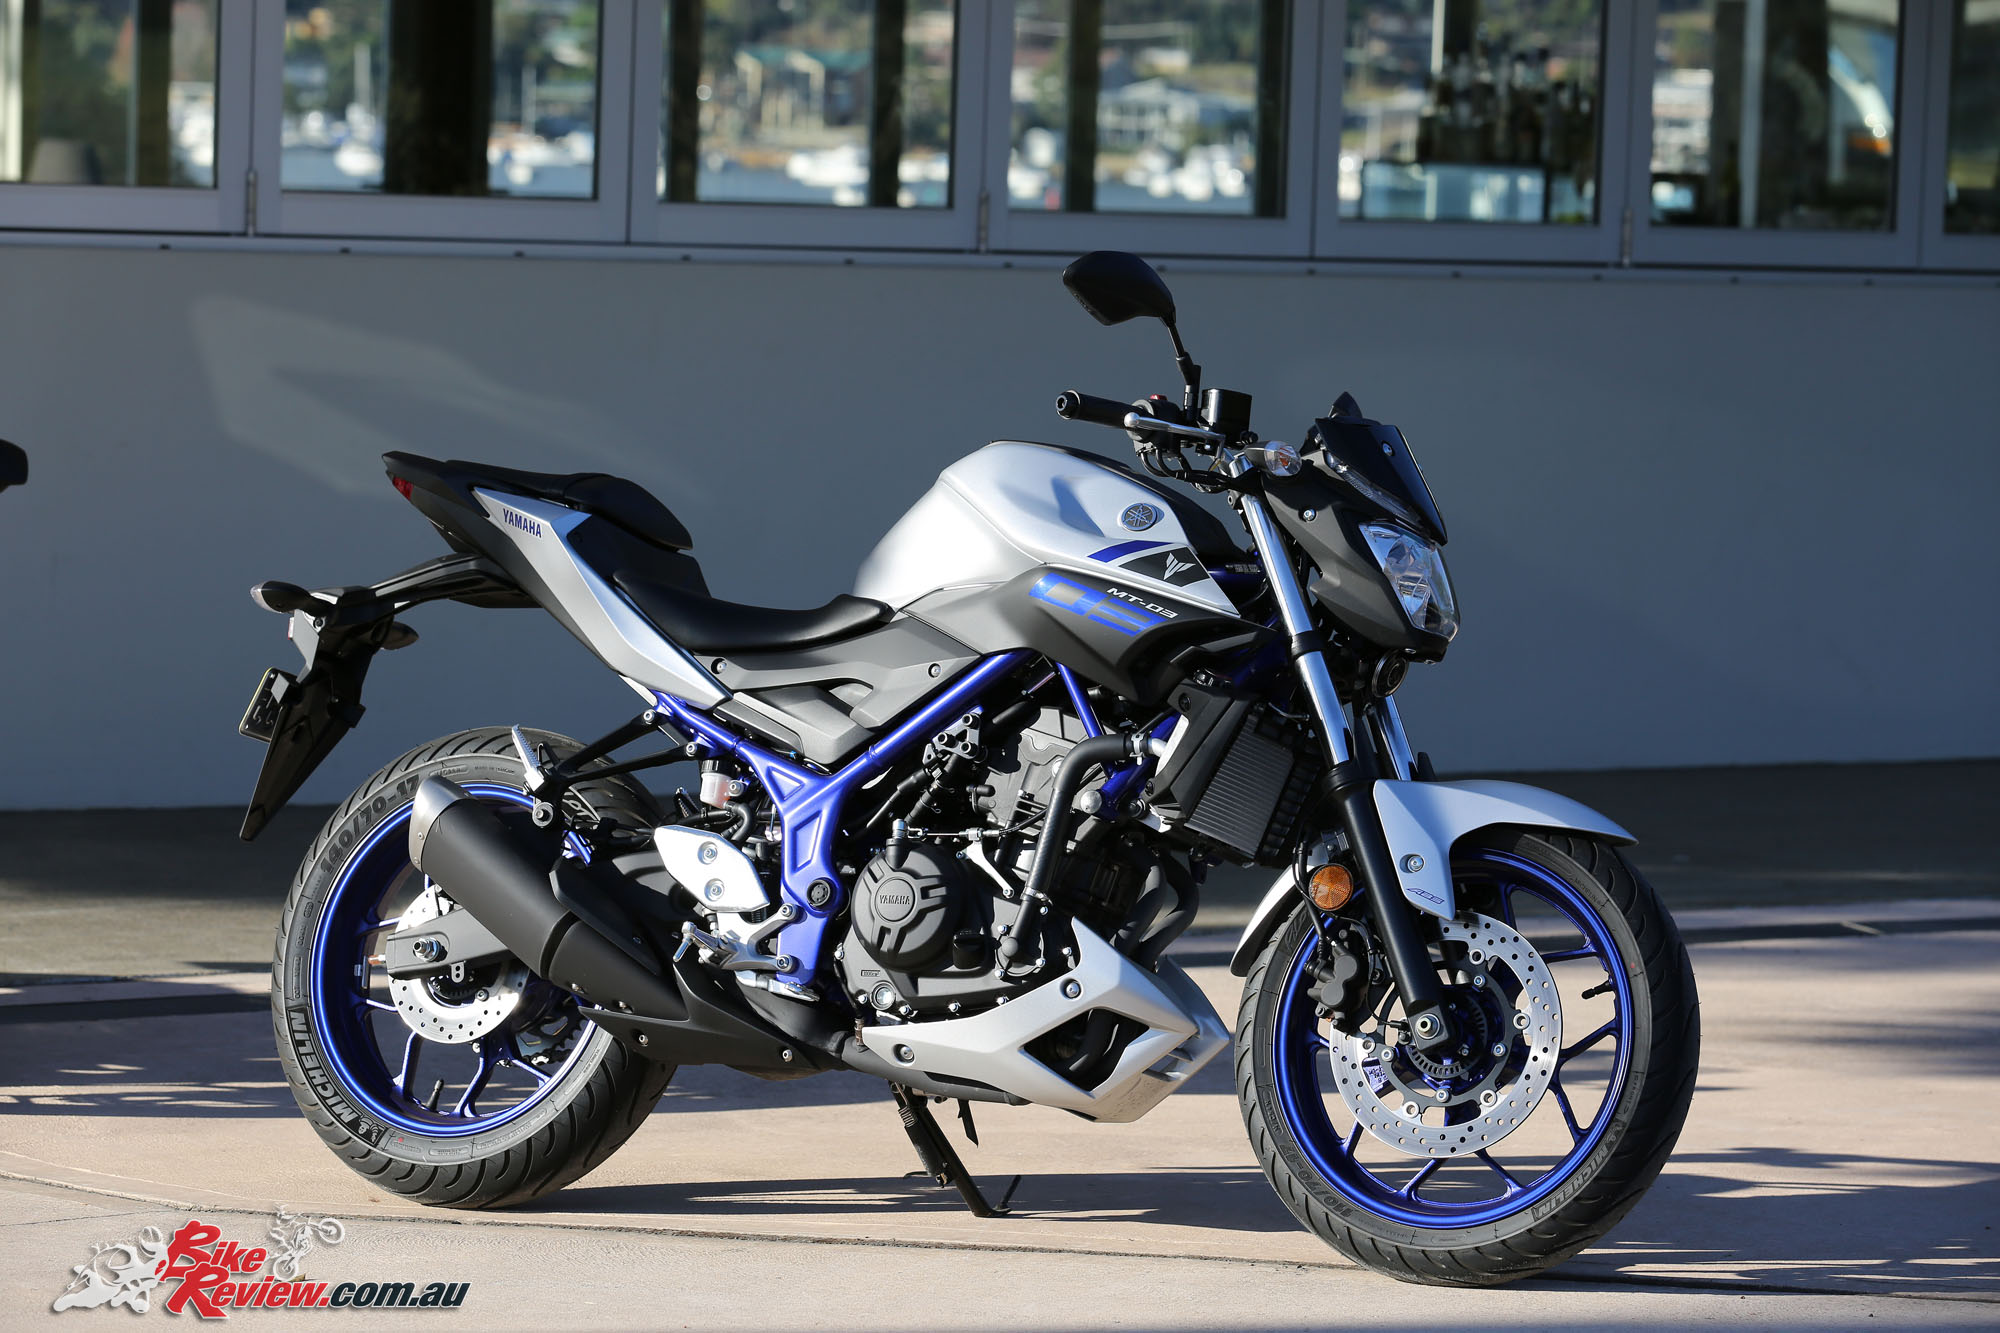 Tiffany Co Love Tiffany additionally Safety Construction Prohibitory No Entry Sign further 2016 Yamaha Mt 03 besides 3813 Language Add Remove Change Windows 10 A together with Things To Do And See In Paros Greece. on preferred name